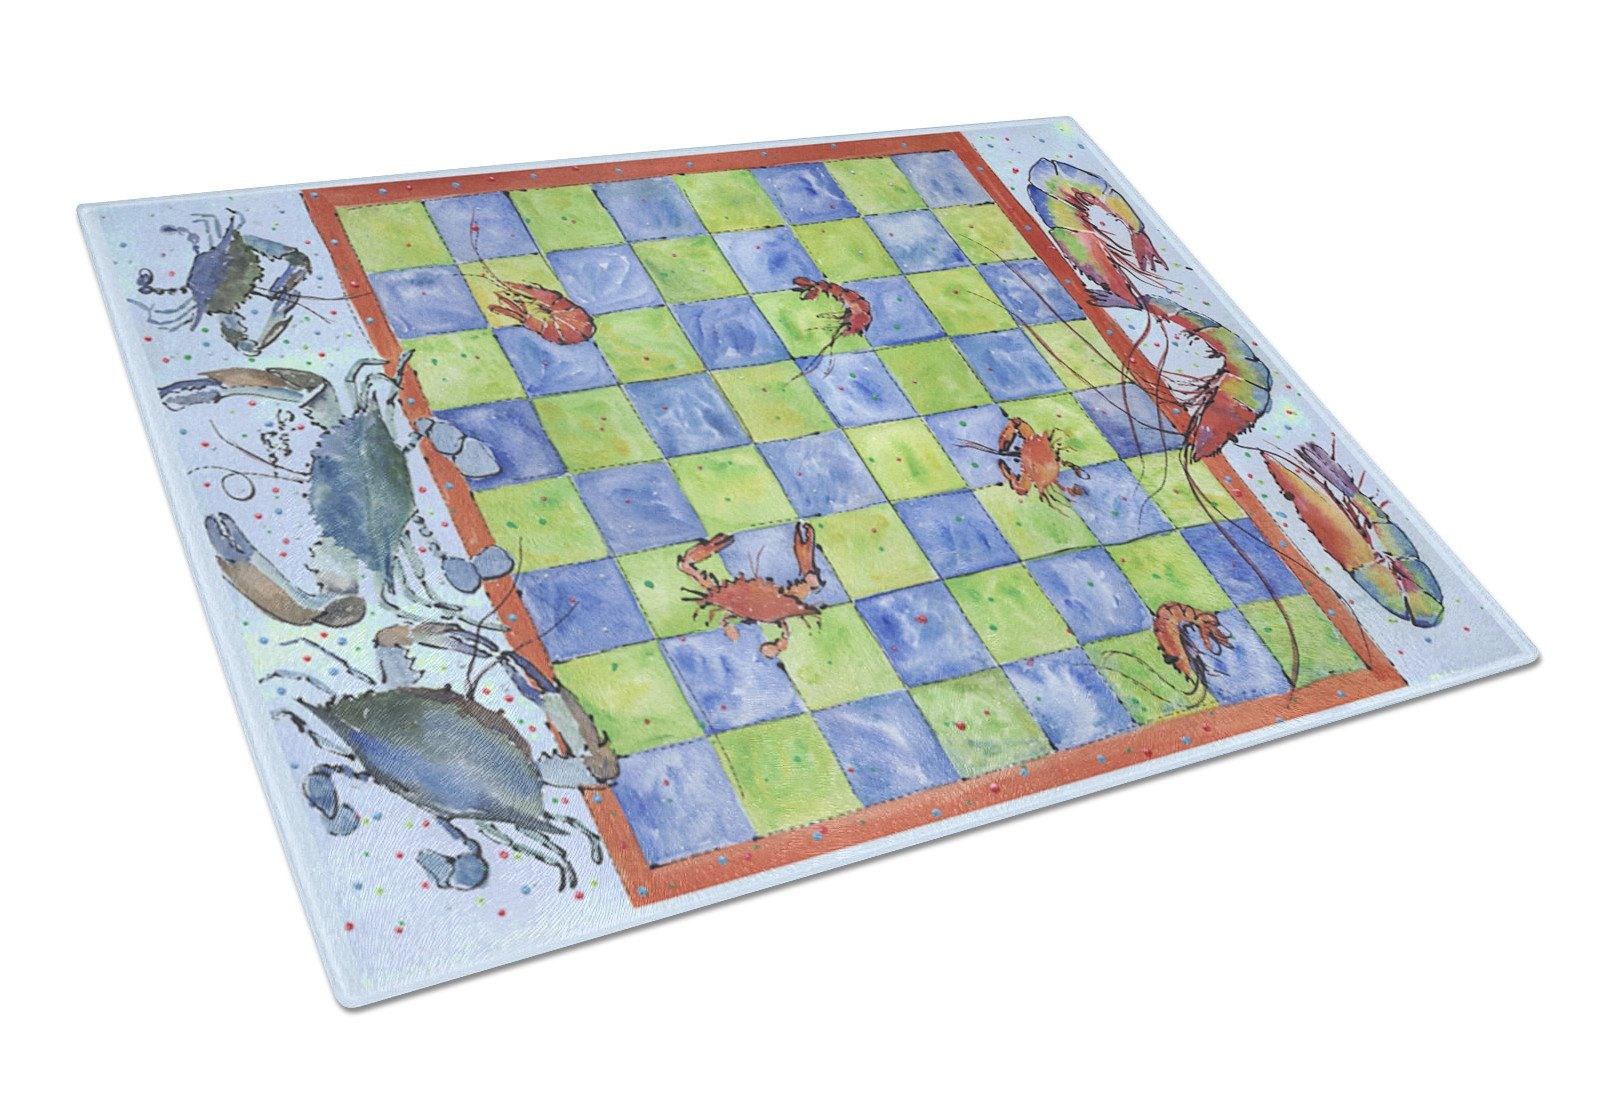 Crab and Shrimp Checkerboard Glass Cutting Board Large by Caroline's Treasures